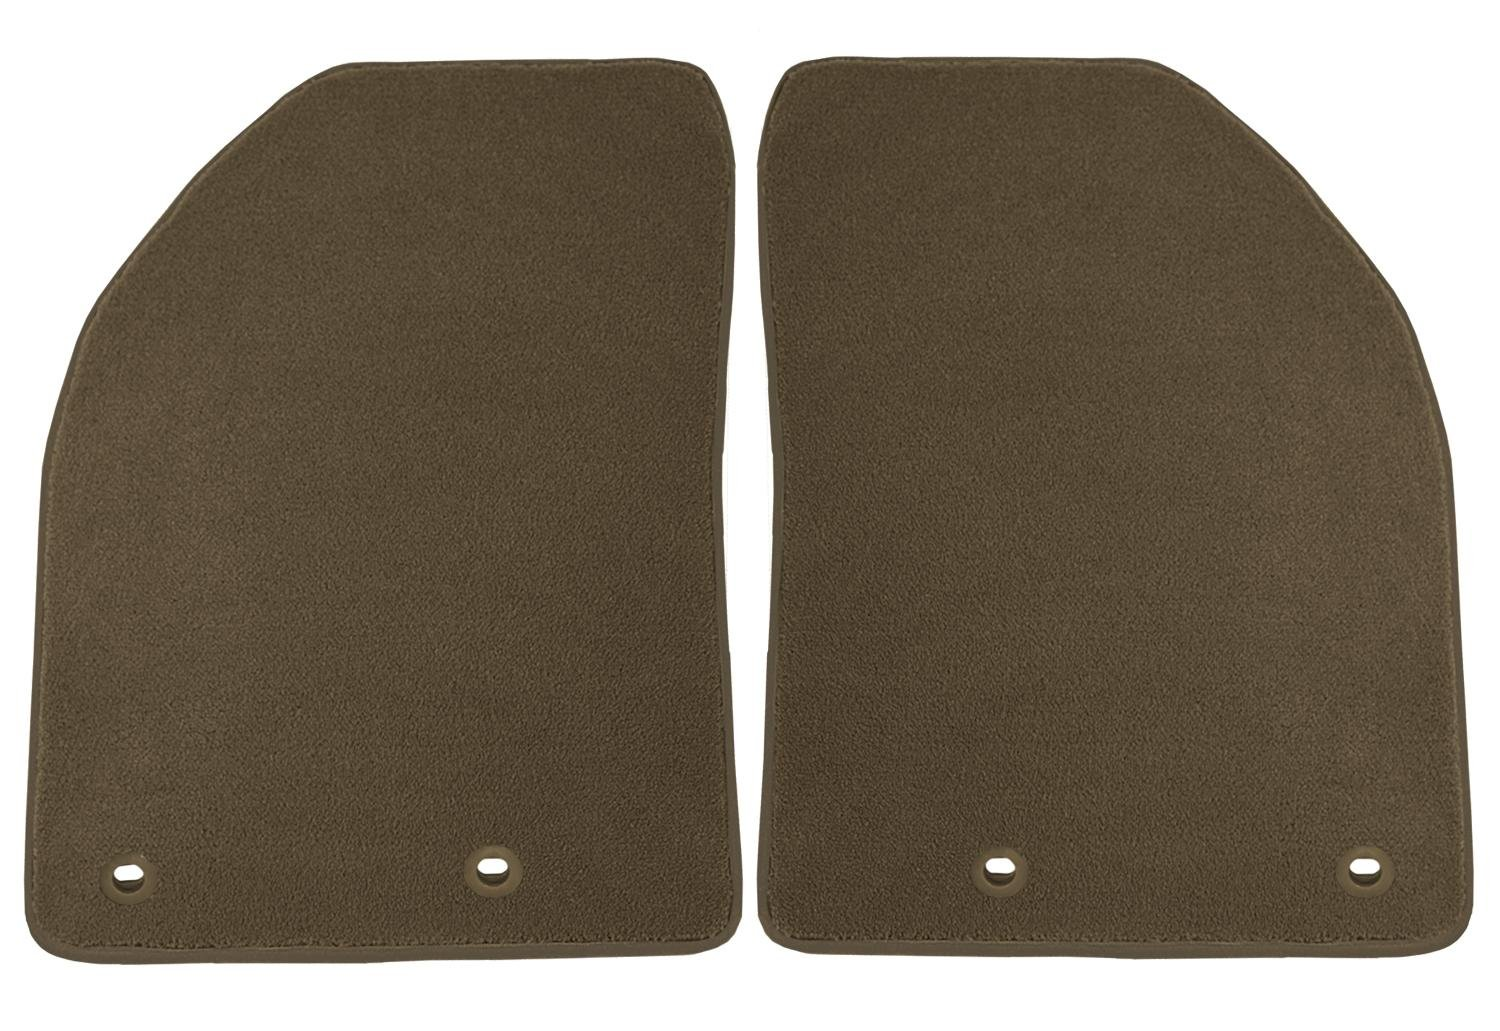 Coverking Custom Fit Front Floor Mats for Select Lexus RX Models Black Nylon Carpet